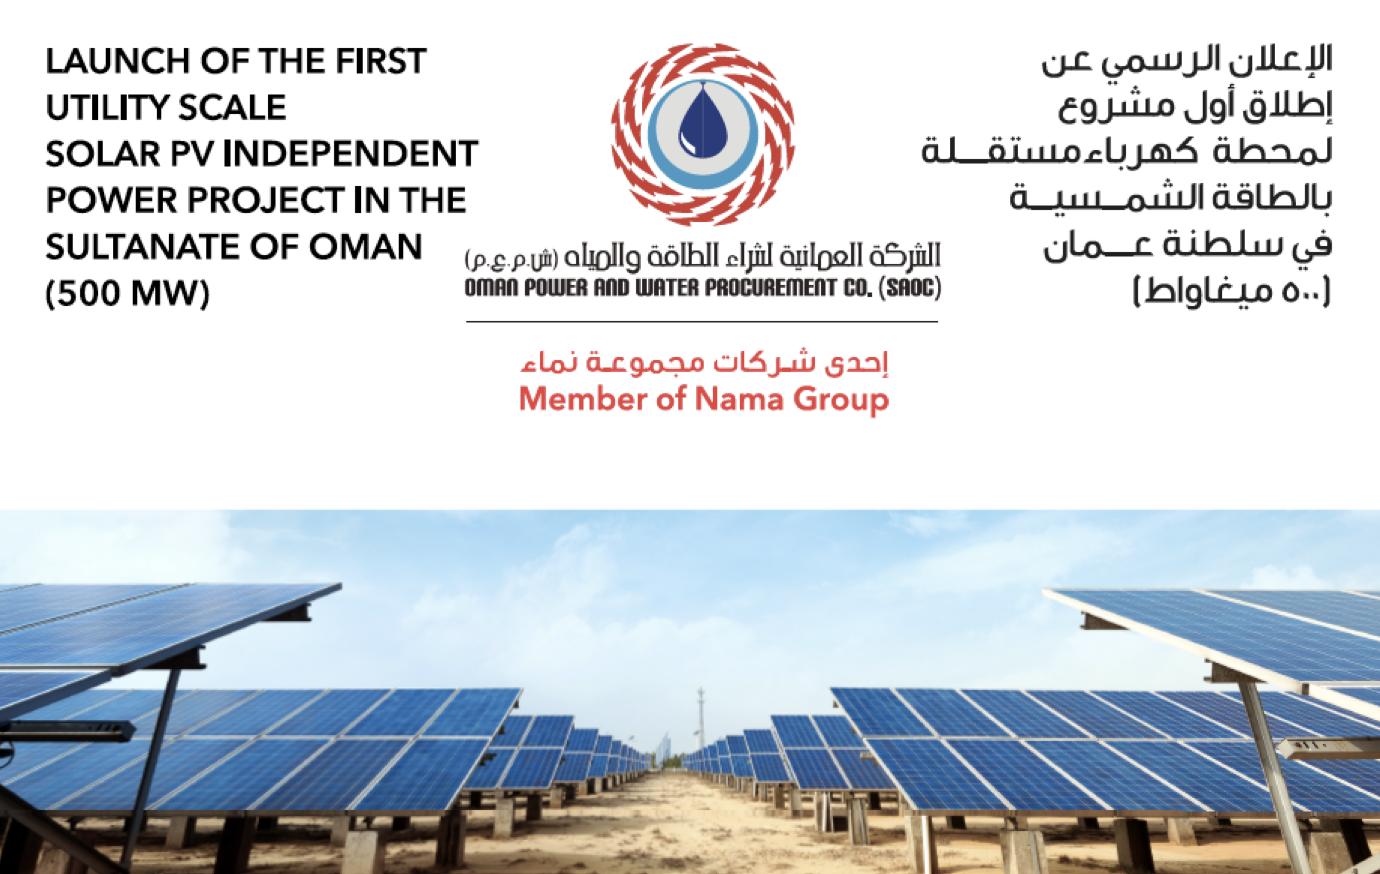 Launch of the First Utility Scale Solar PV Independent Power